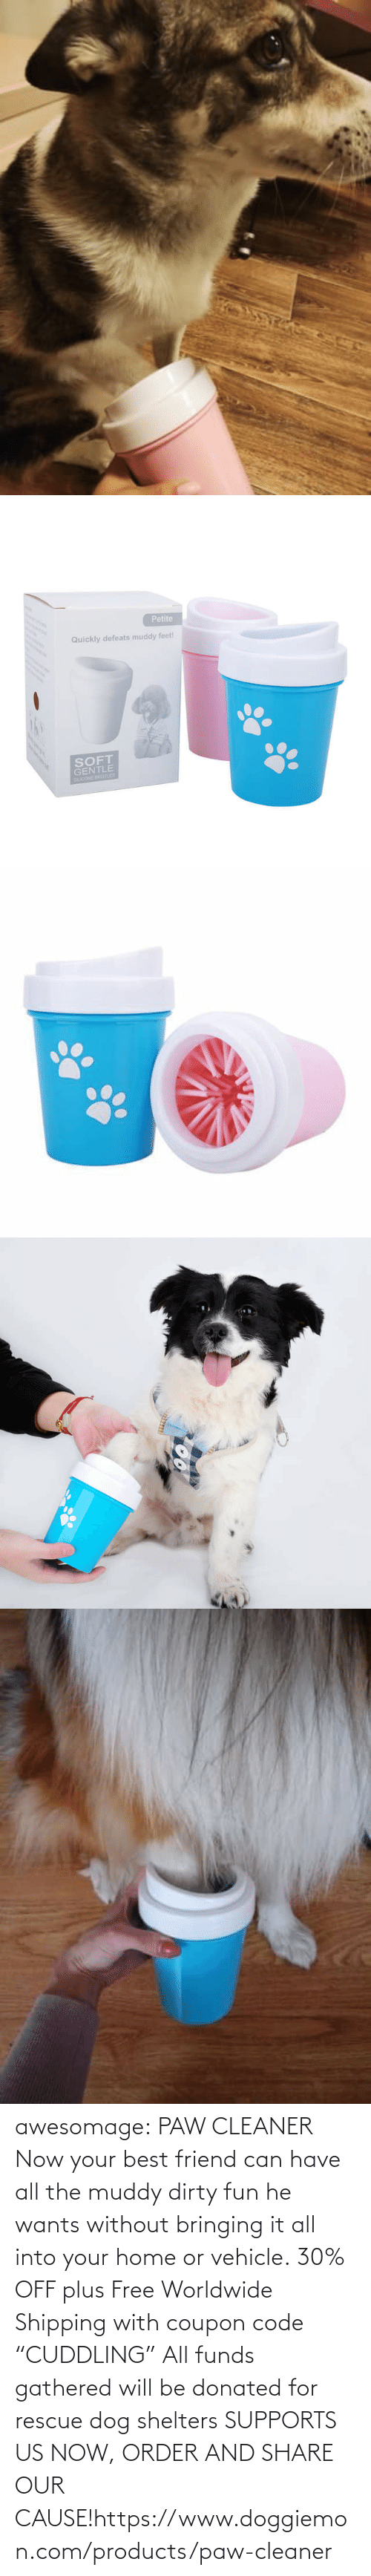 "Off: awesomage:   PAW CLEANER     Now your best friend can have all the muddy dirty fun he wants without bringing it all into your home or vehicle.    30% OFF plus Free Worldwide Shipping with coupon code ""CUDDLING""    All funds gathered will be donated for rescue dog shelters    SUPPORTS US NOW, ORDER AND SHARE OUR CAUSE!https://www.doggiemon.com/products/paw-cleaner"